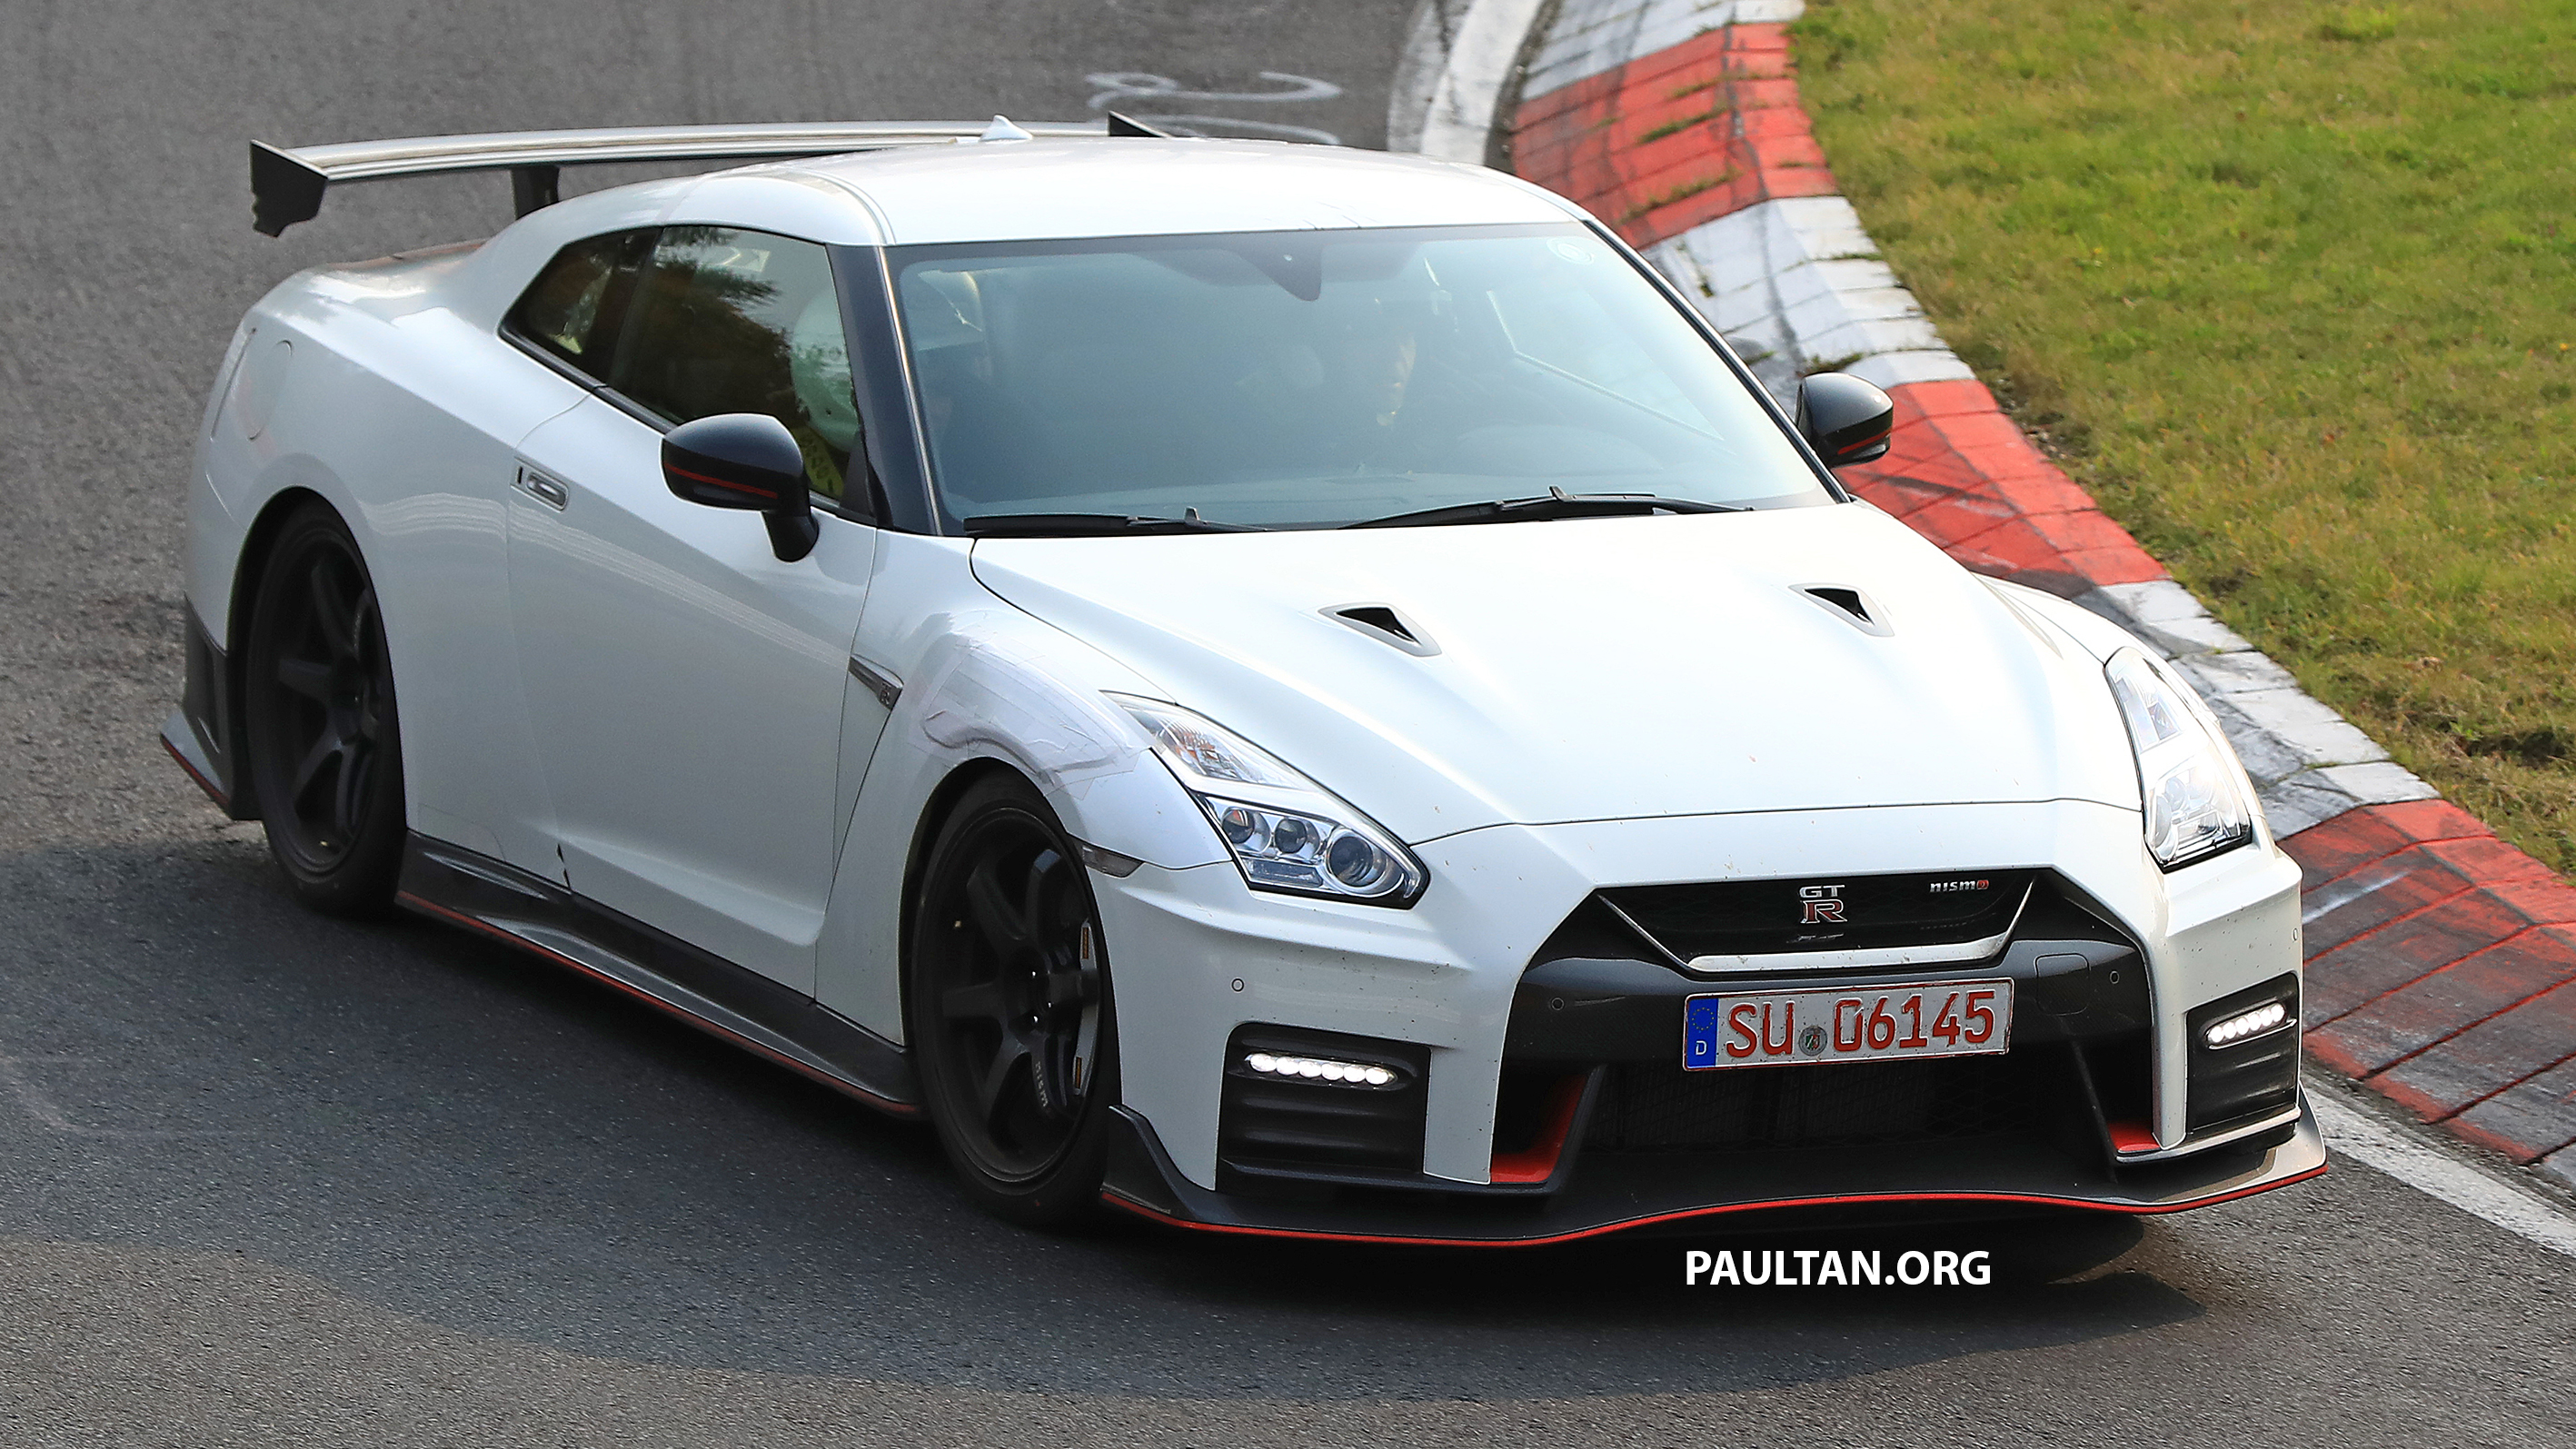 SPIED: 2019 Nissan GT-R Nismo seen at the 'Ring